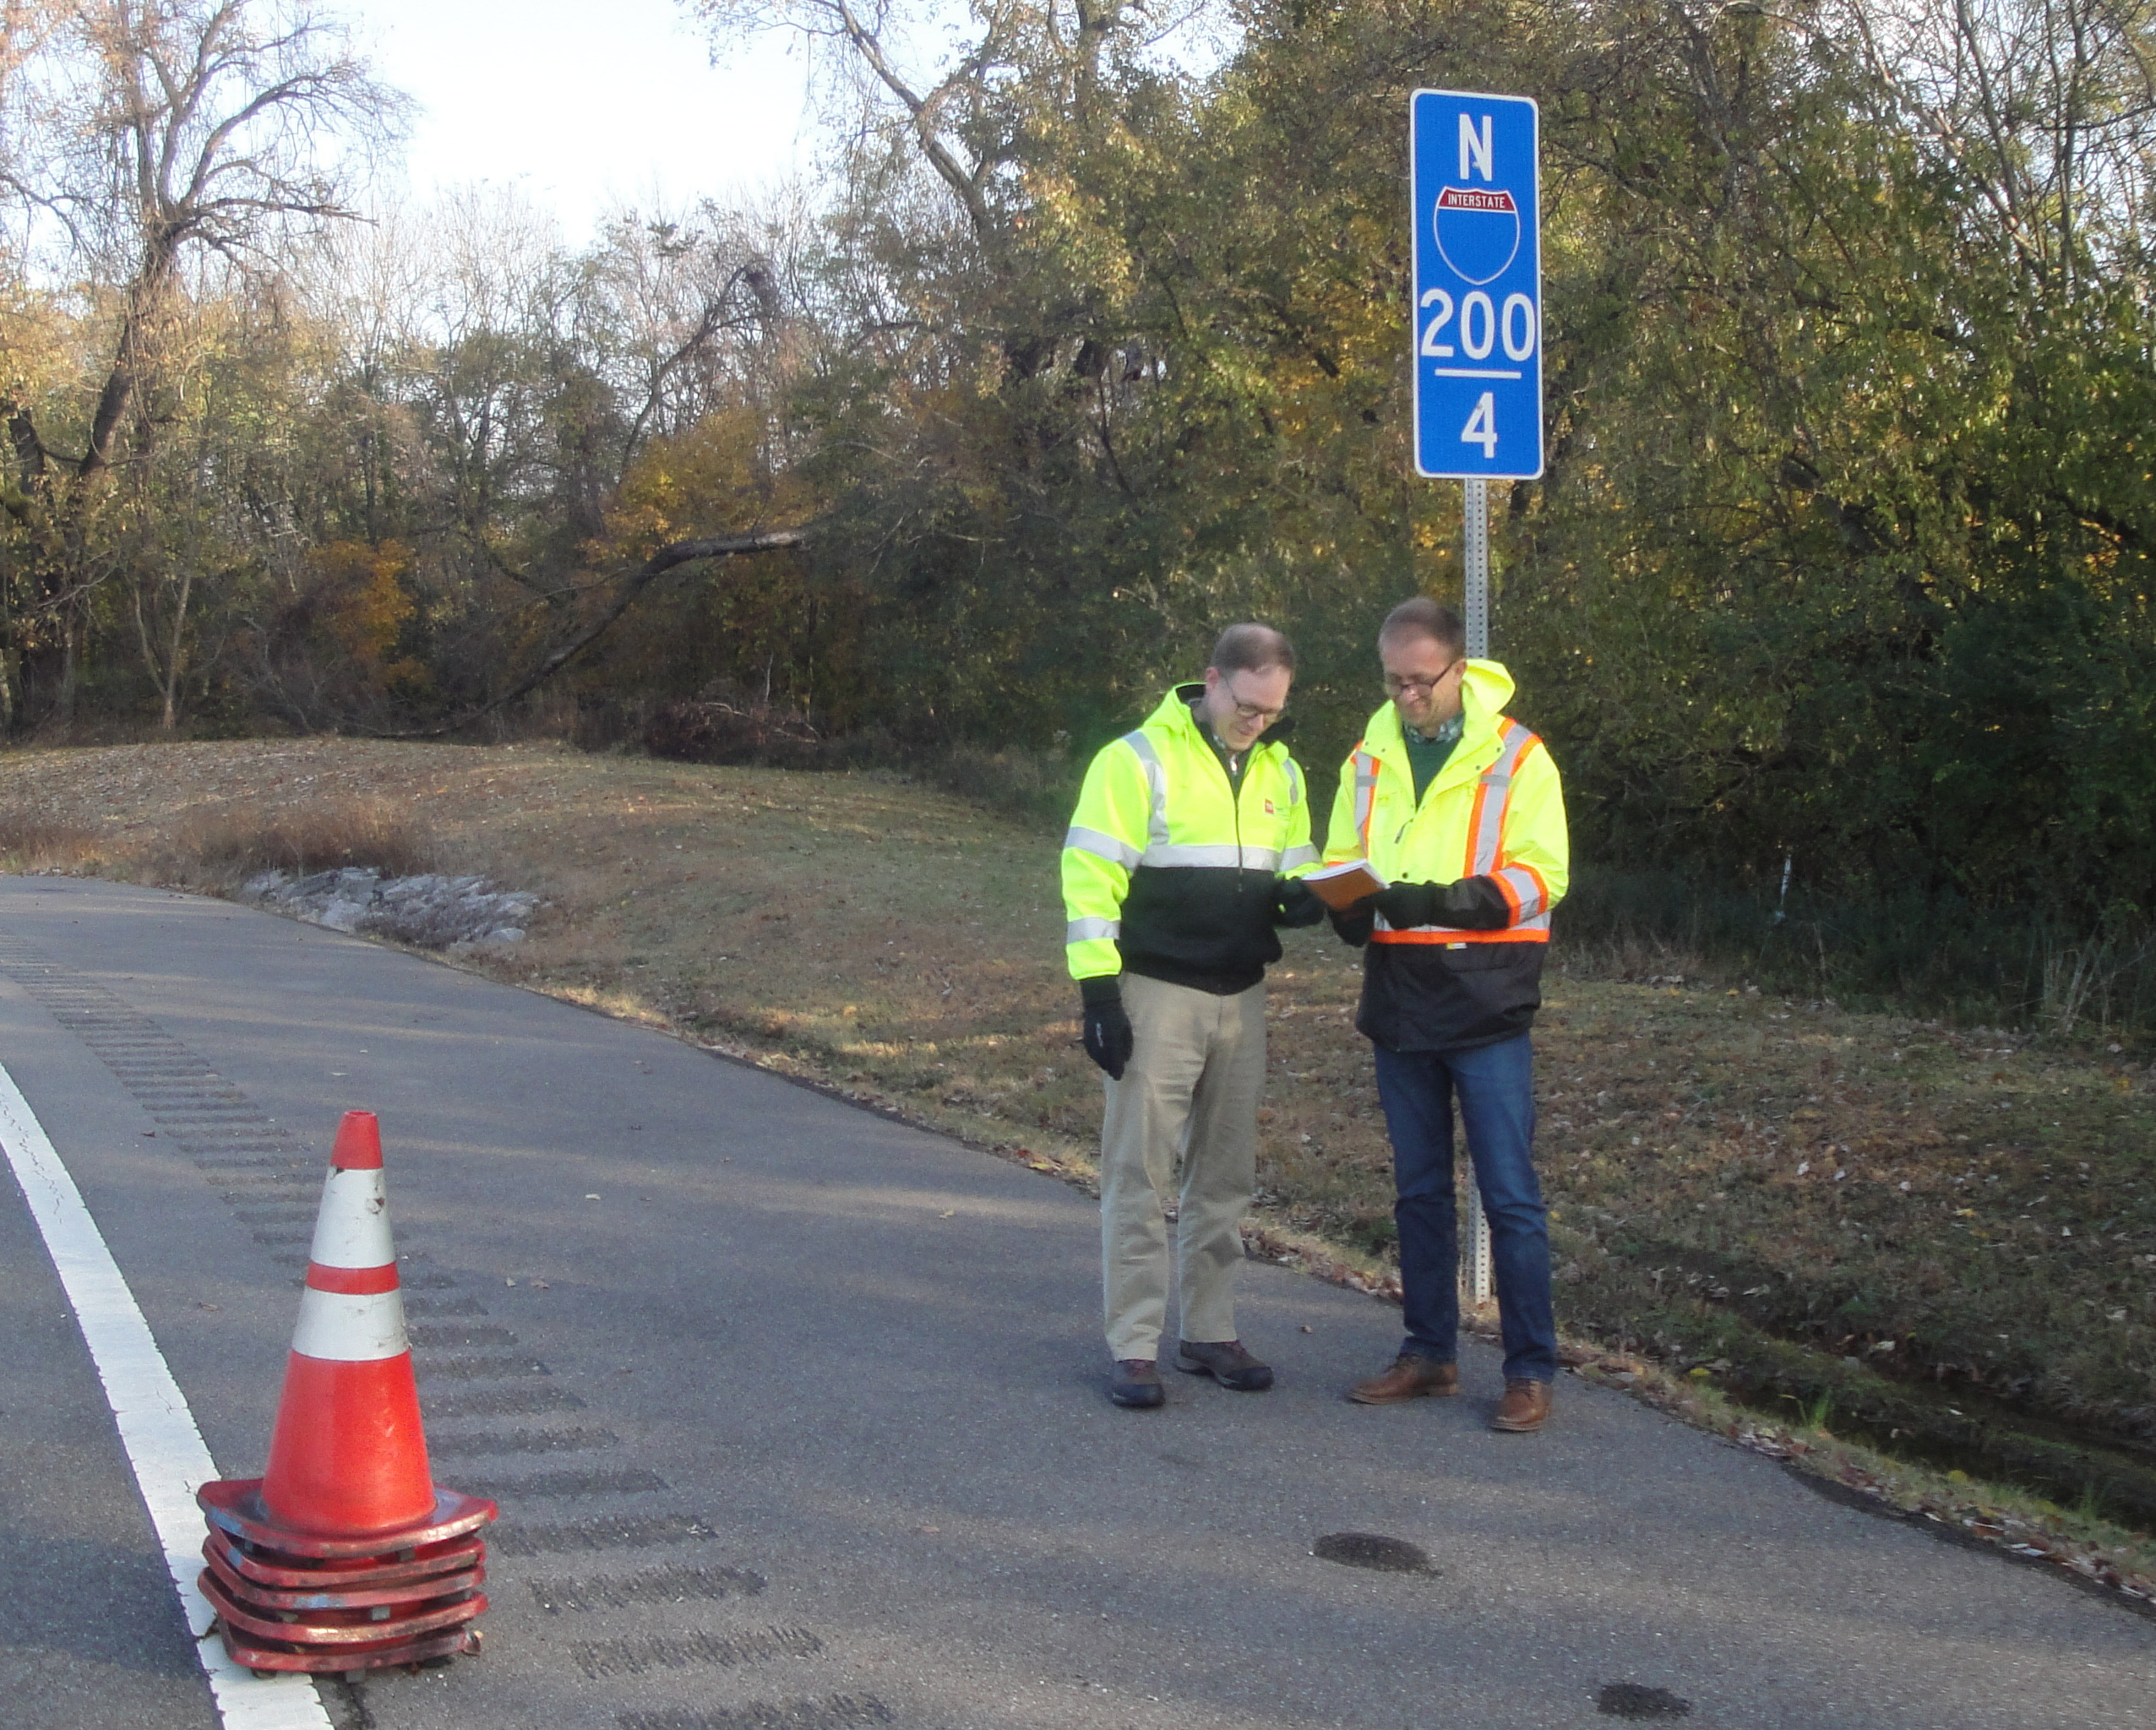 Matt Cate and Airton Kohls checking setup with the MUTCD